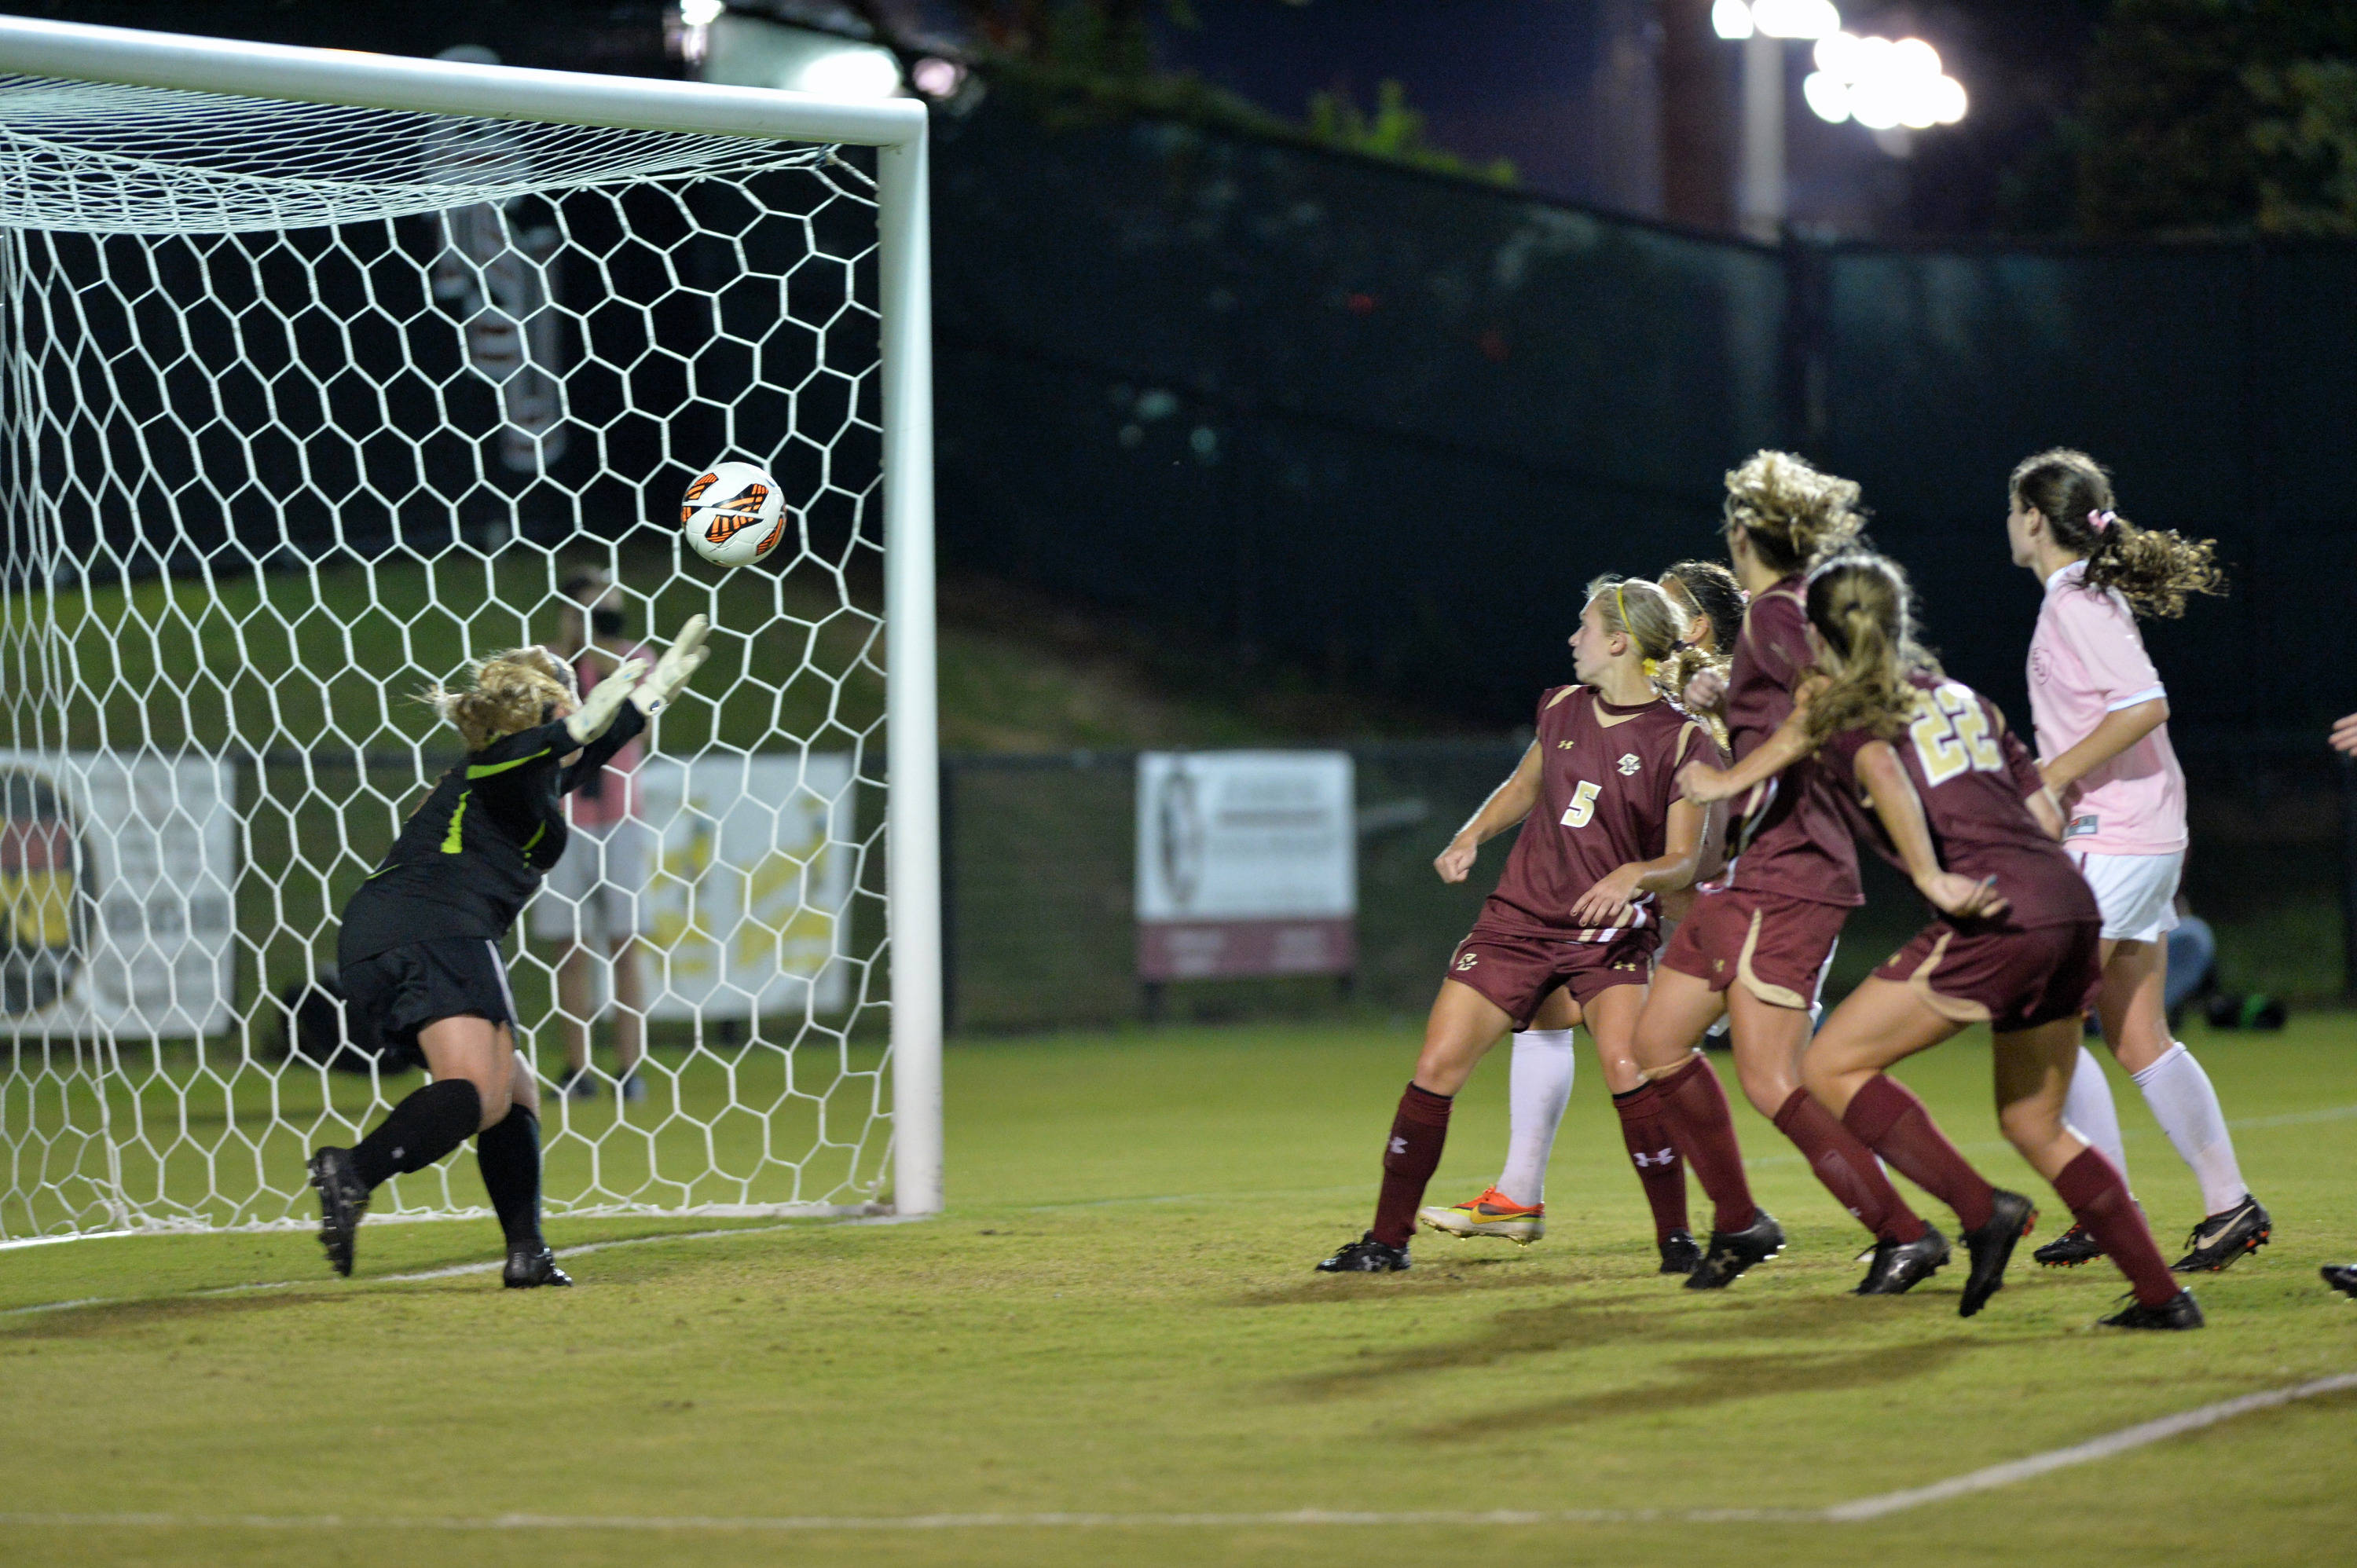 The second goal of the night came off a Megan Campbell throw-in that went off a BC player.